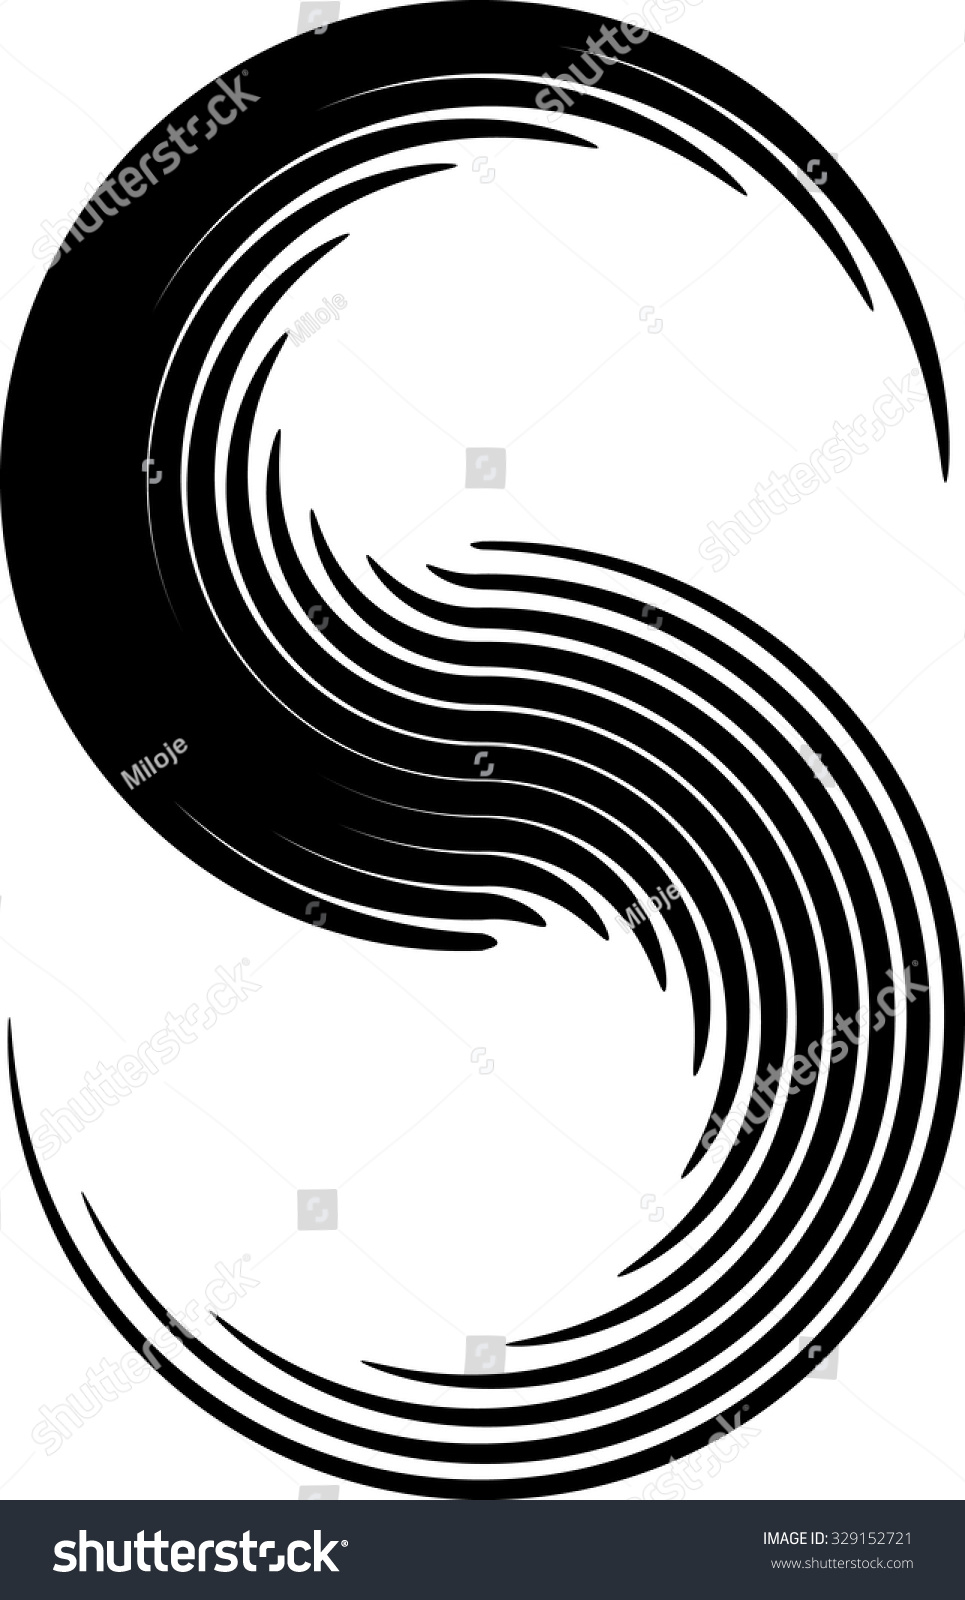 Curved Line Design : Vector curved lines design element black stock